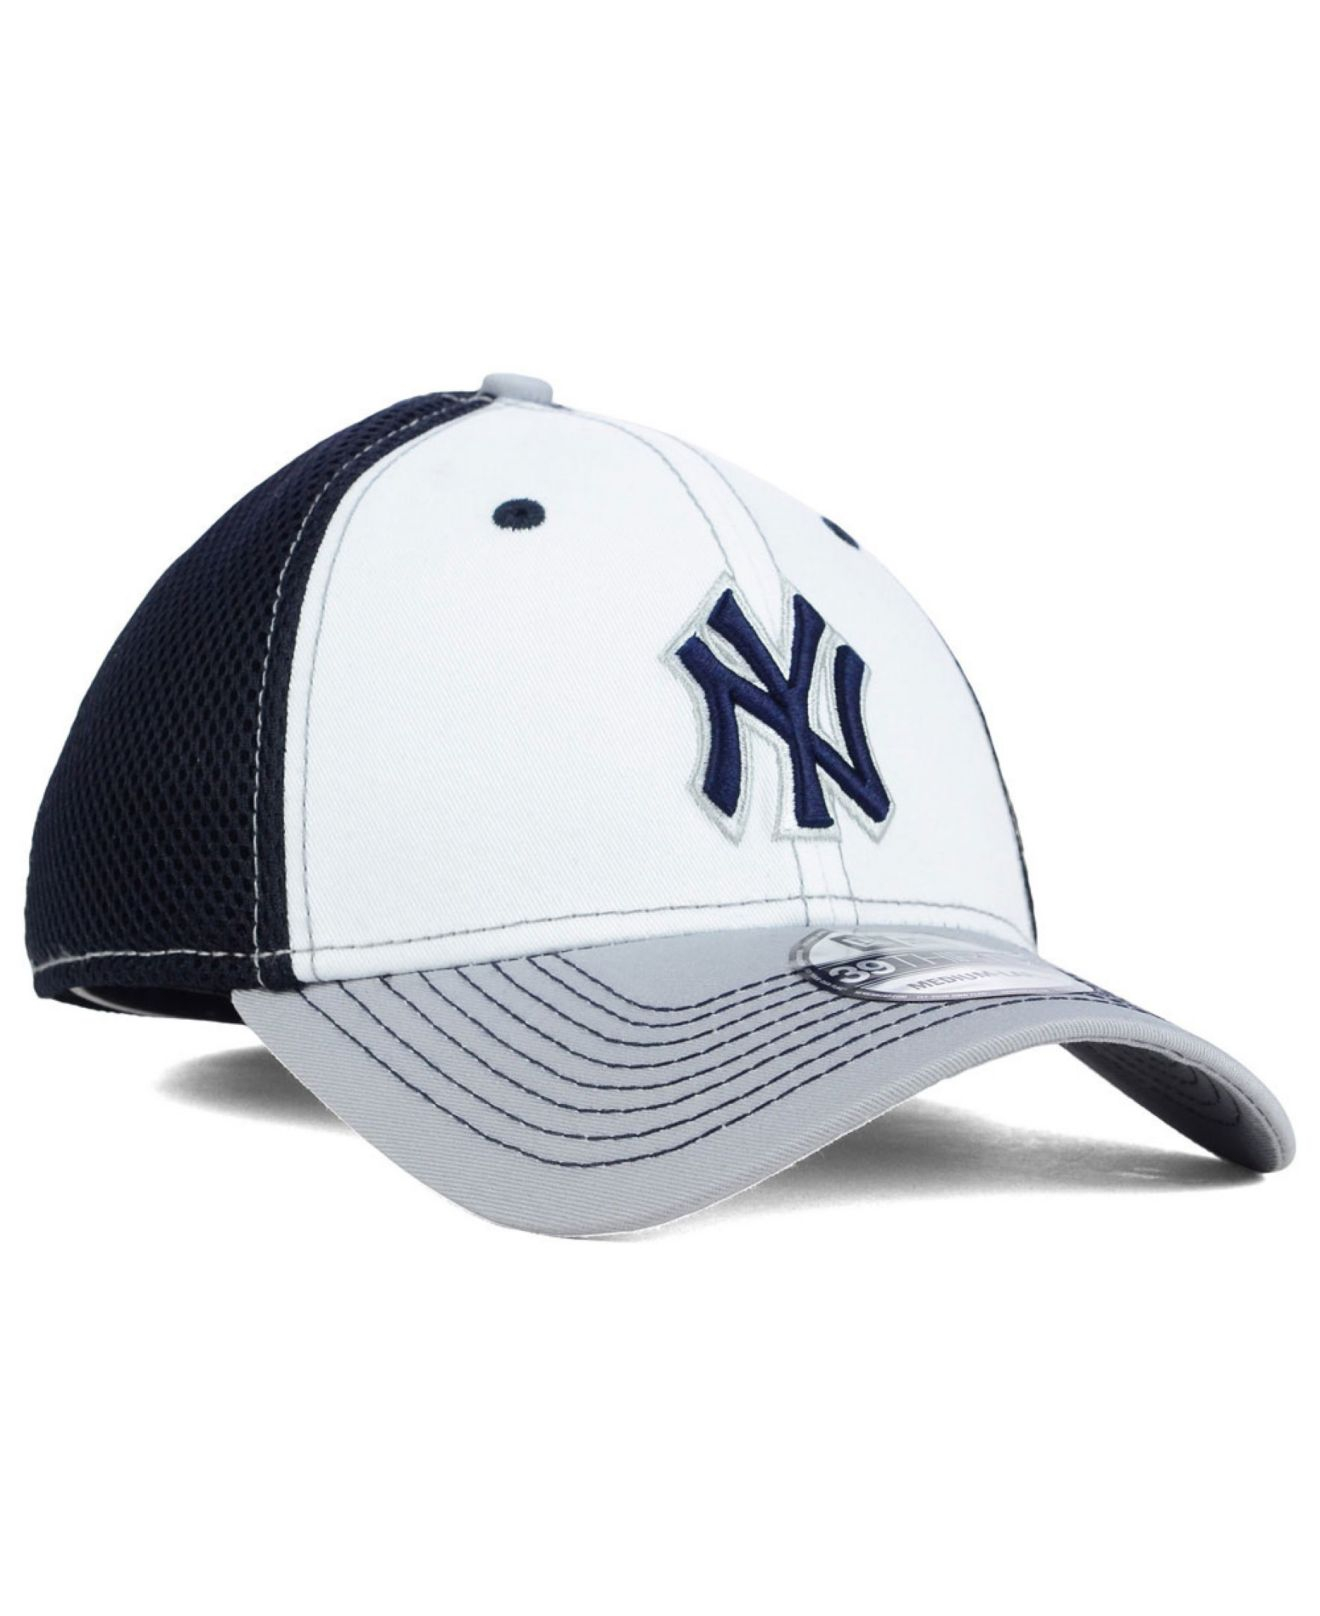 separation shoes 7331e 55f79 ... era limited edition baseball hats york yankees mets fitted snapback new  style lyst ktz new york yankees neo 39thirty cap in blue for men 4cbc3  e9211 ...